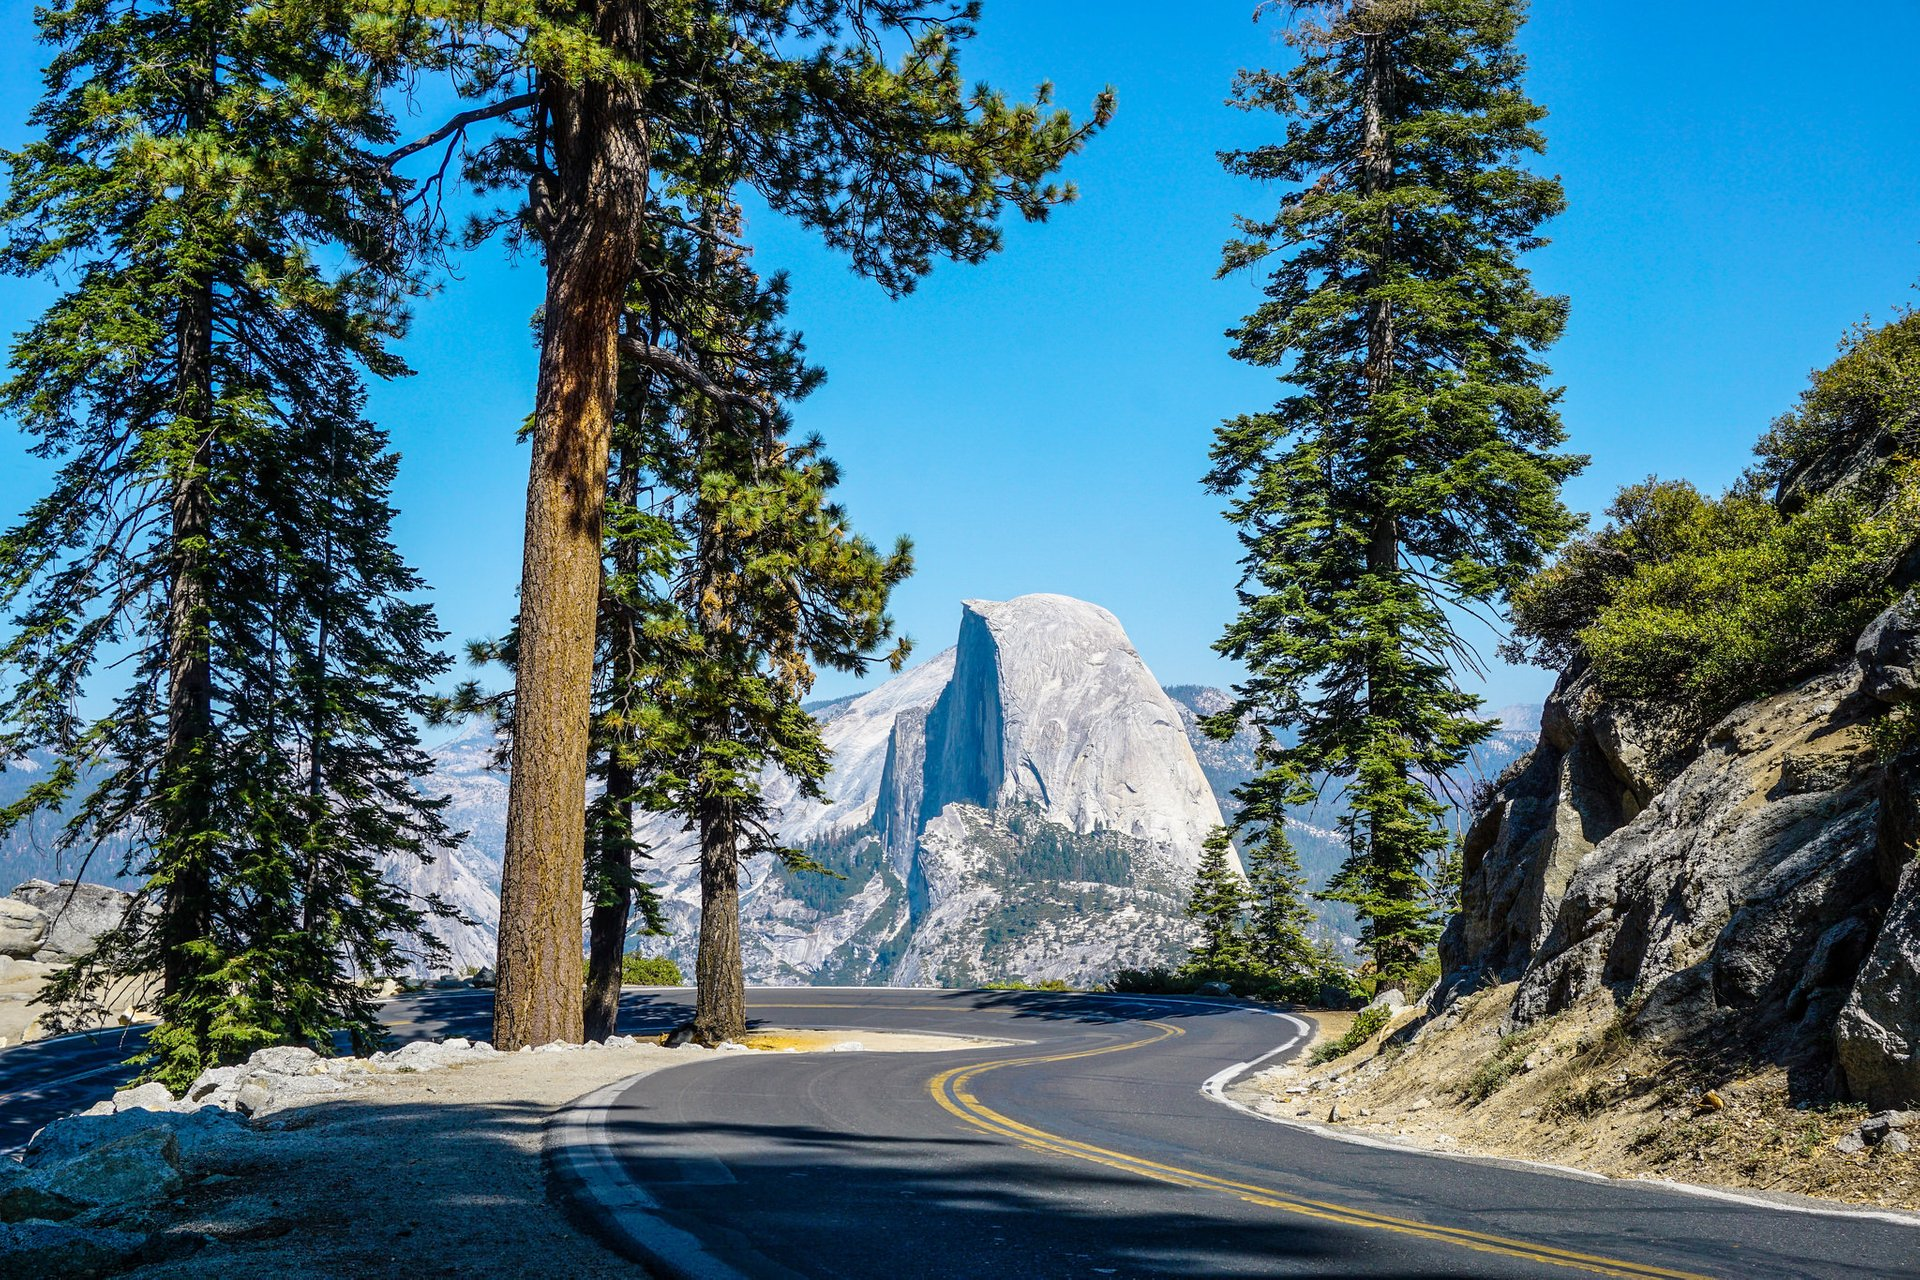 The road to the Glacier Point 2019